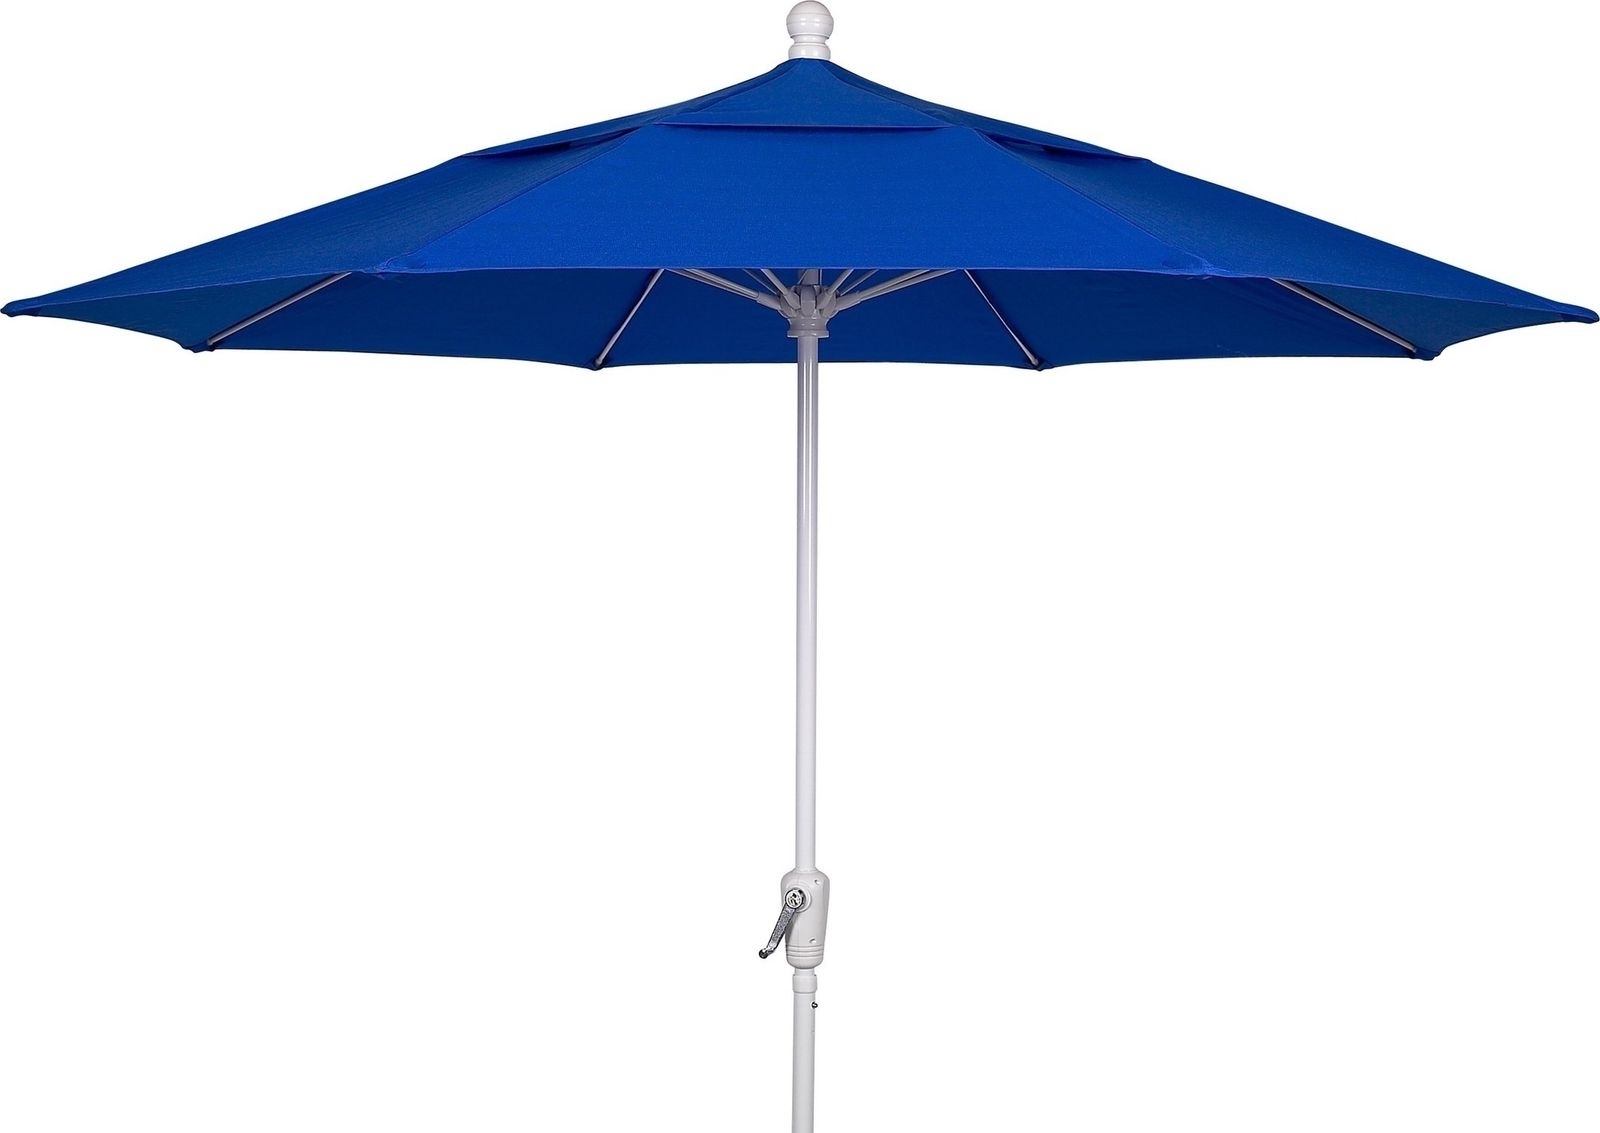 Fiberbuilt Umbrellas Patio Umbrella  (View 10 of 20)